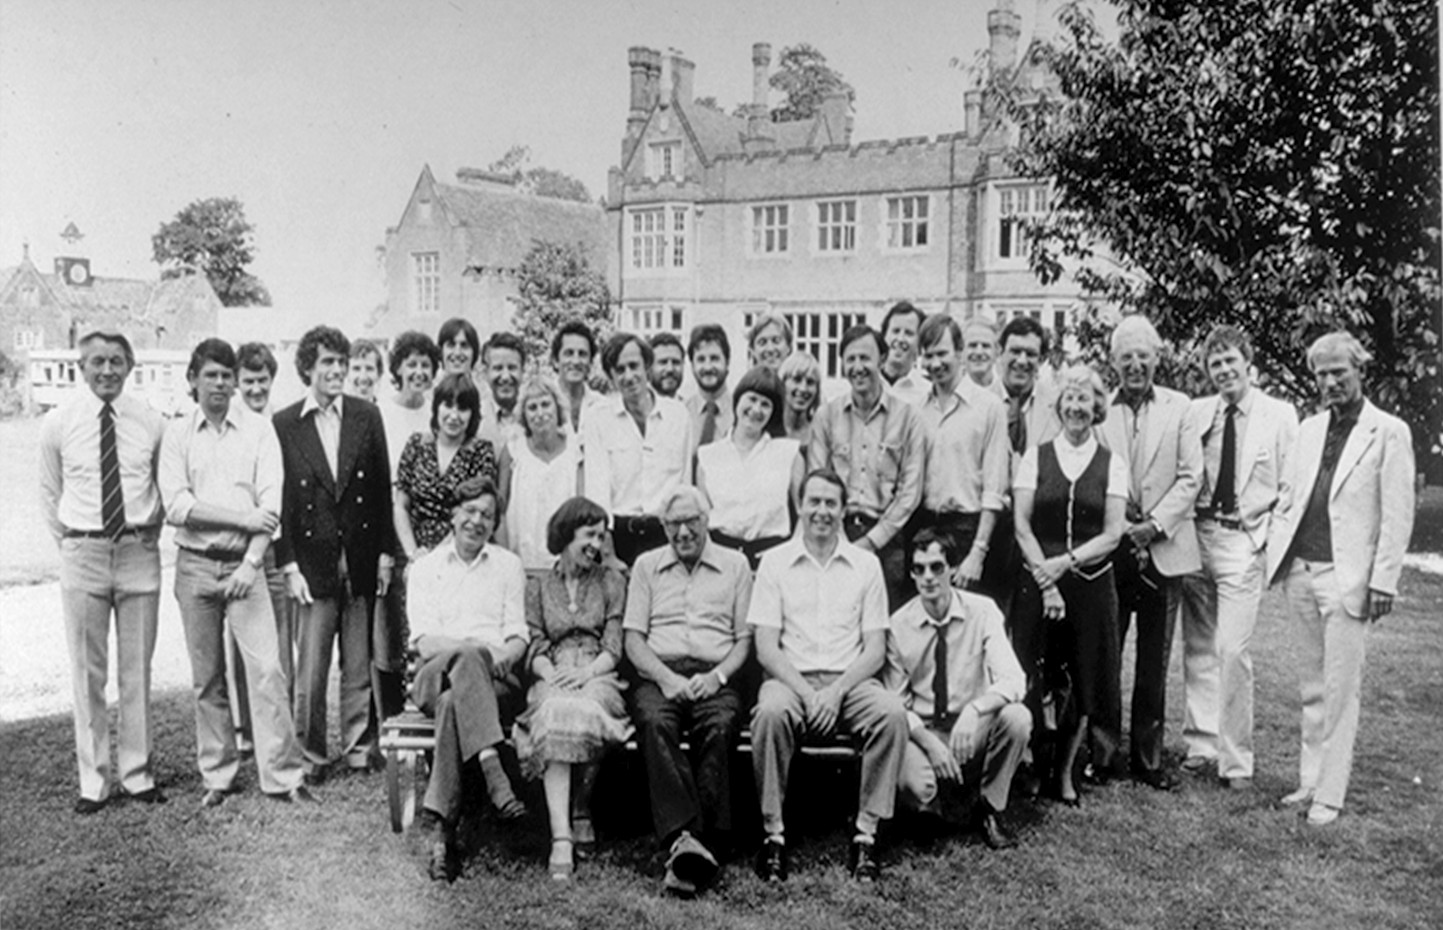 The first IVF conference was held at Bourn Hall in 1981